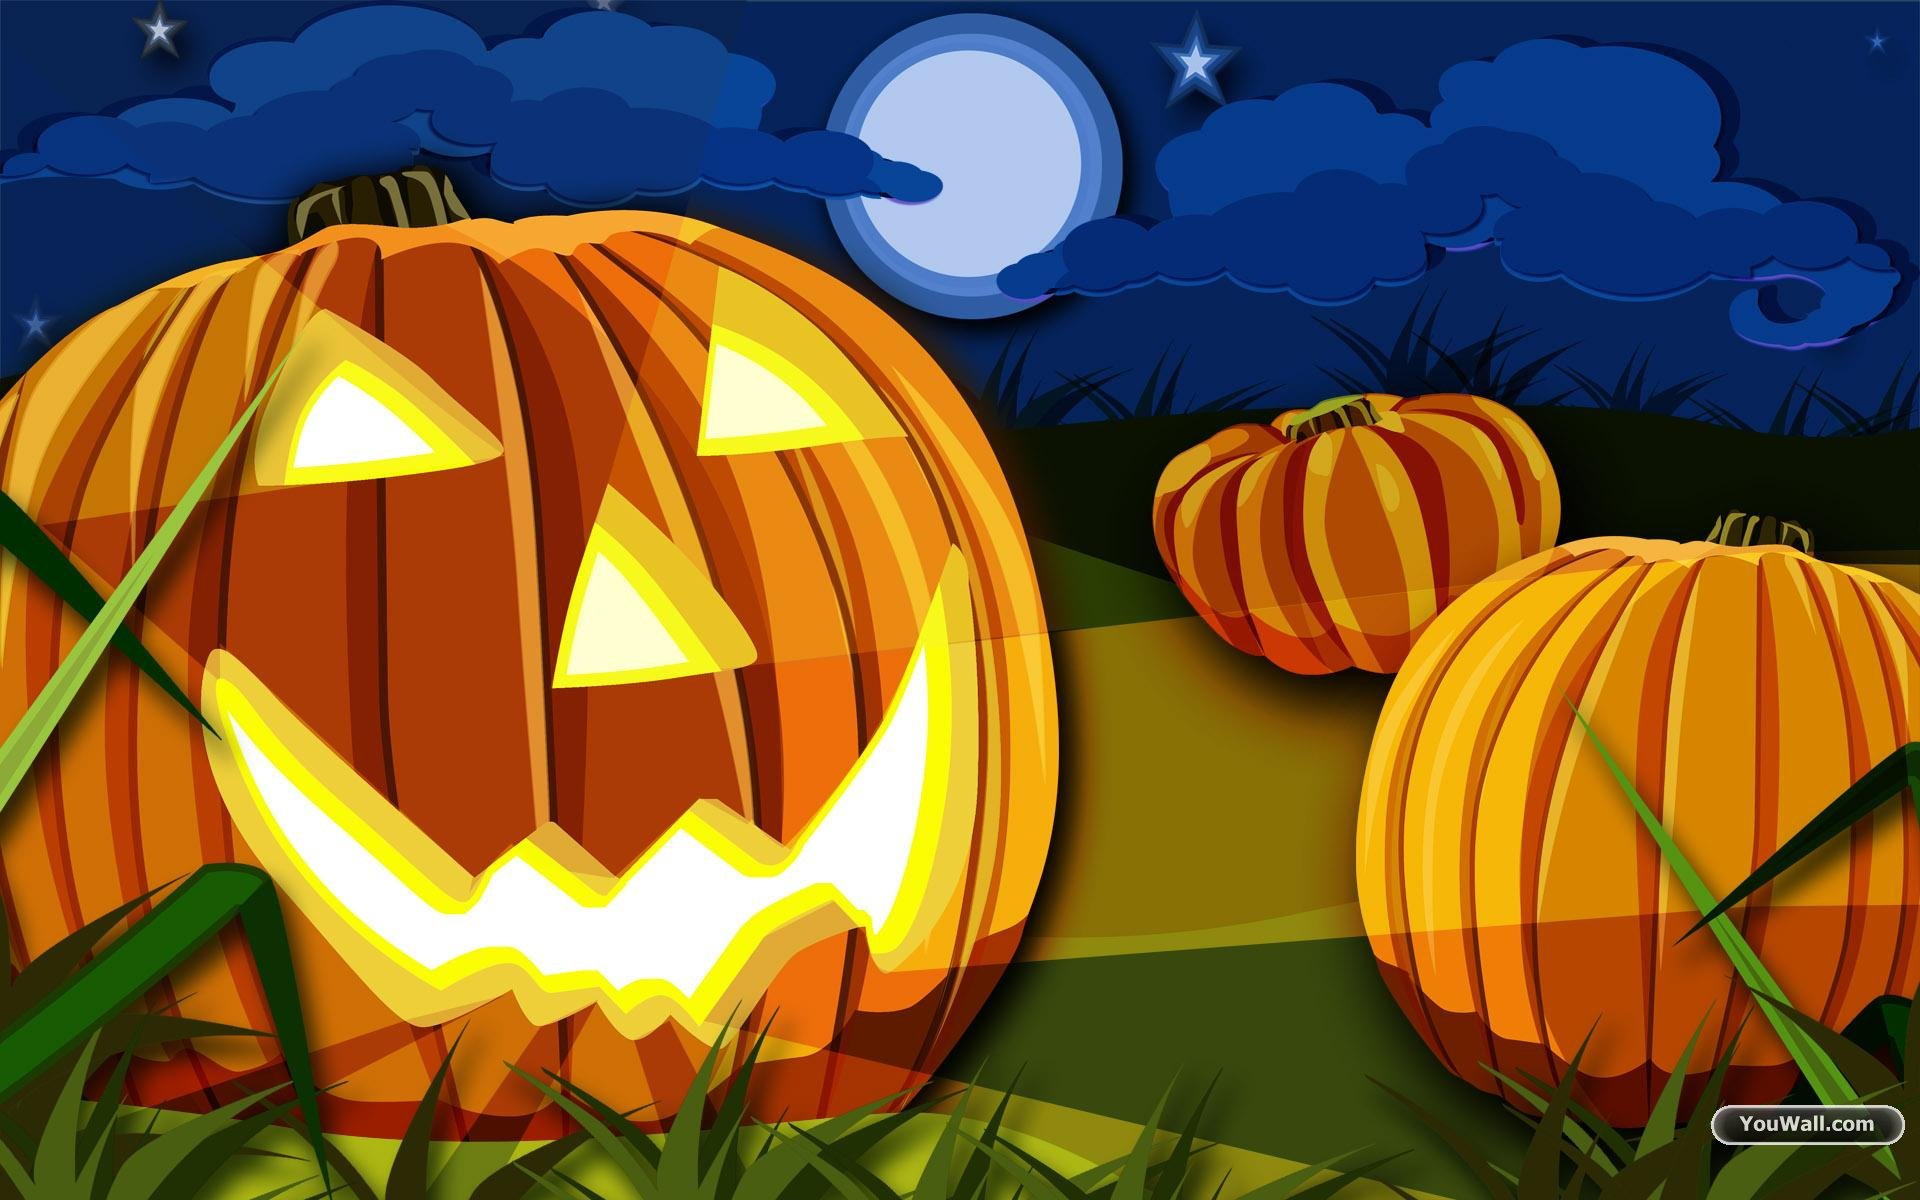 YouWall - Halloween Wallpaper - wallpaper,wallpapers,free